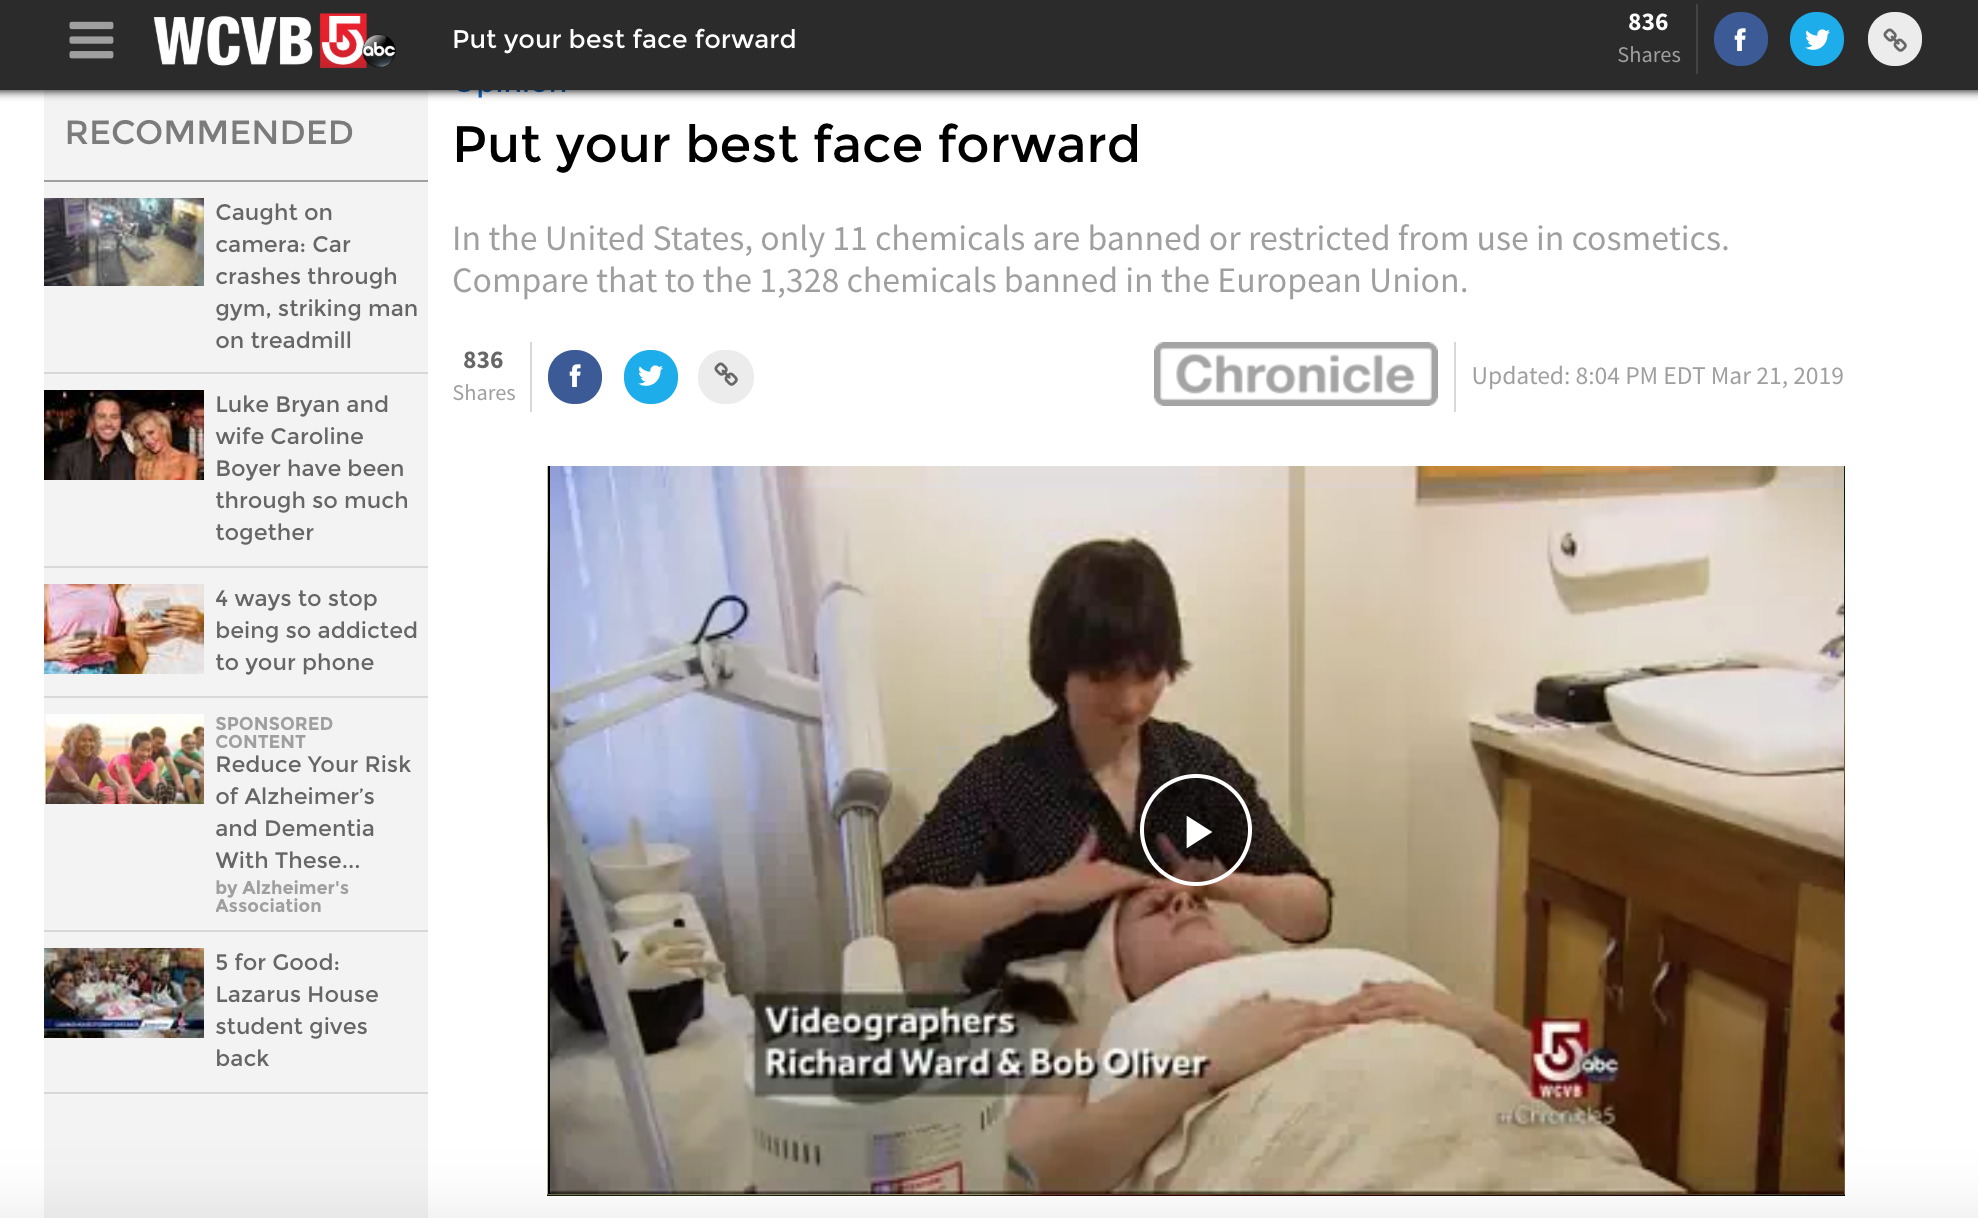 WCVB: Put your best face forward